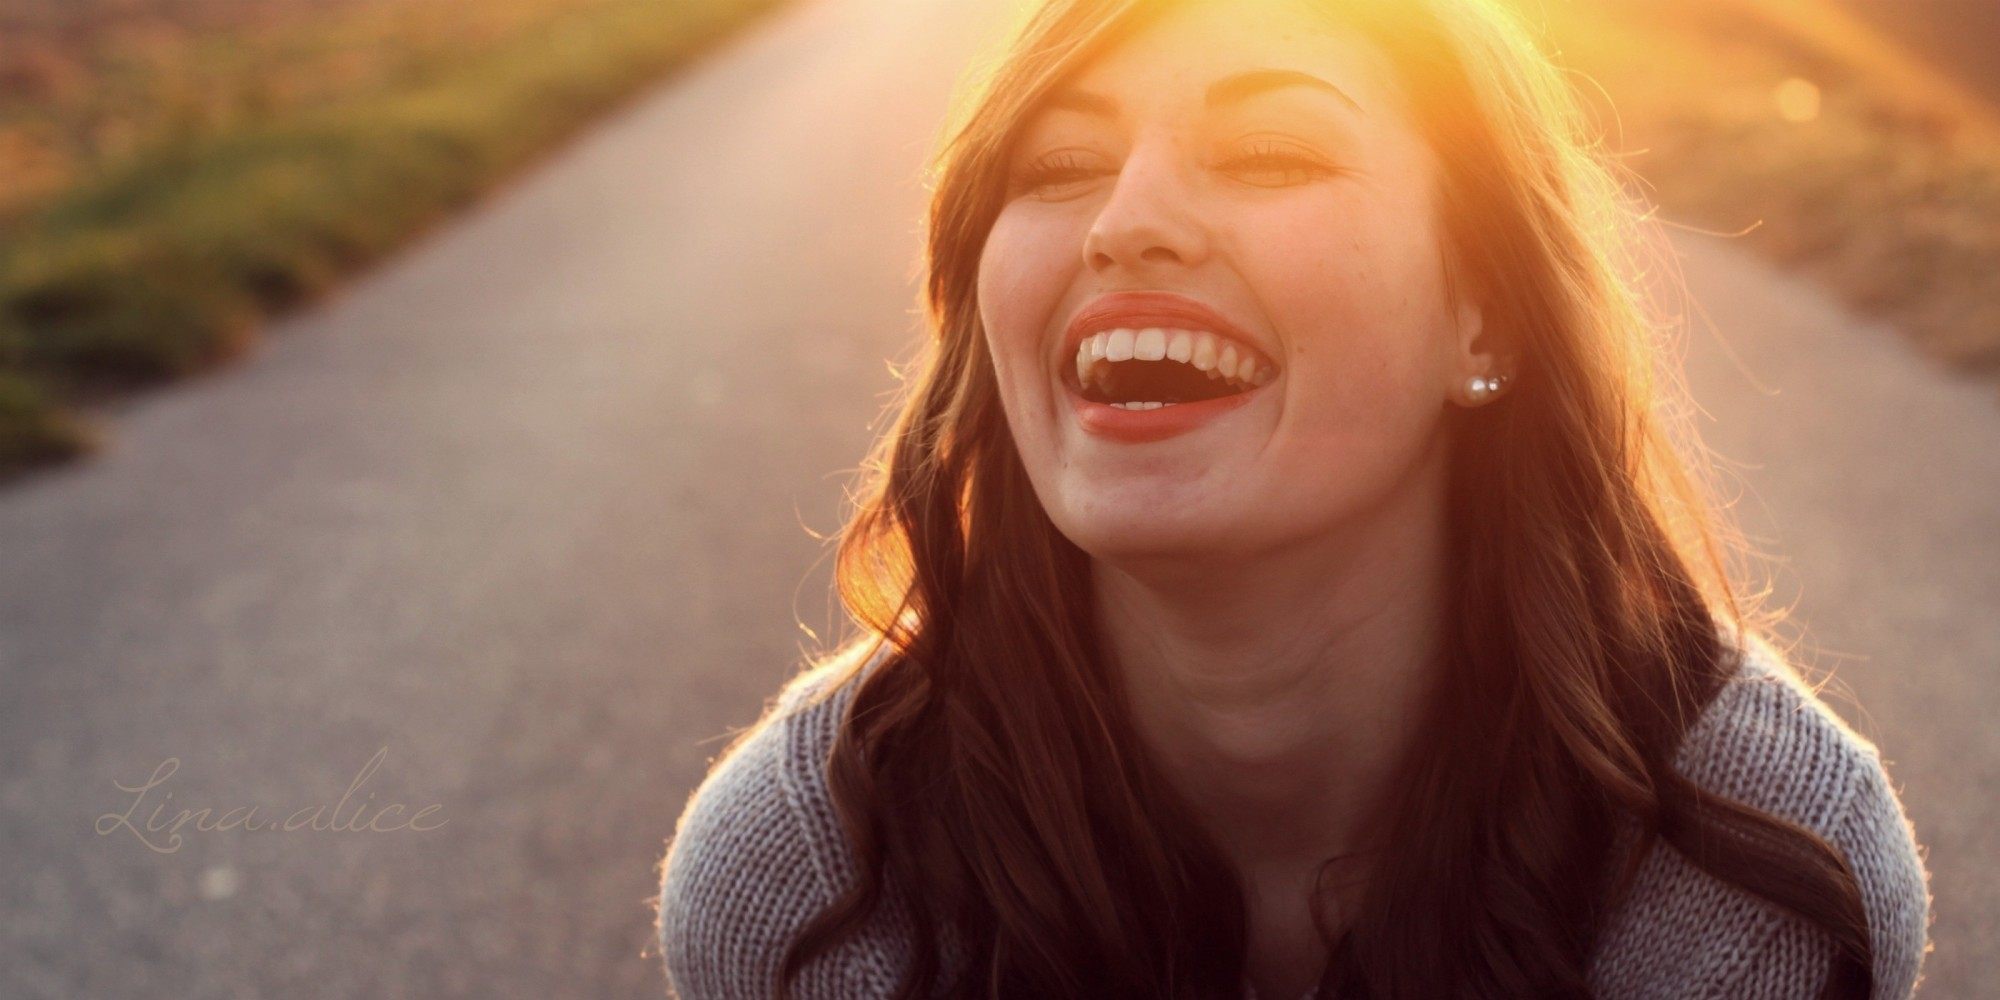 Quotes About Happiness And Smiling And Laughter